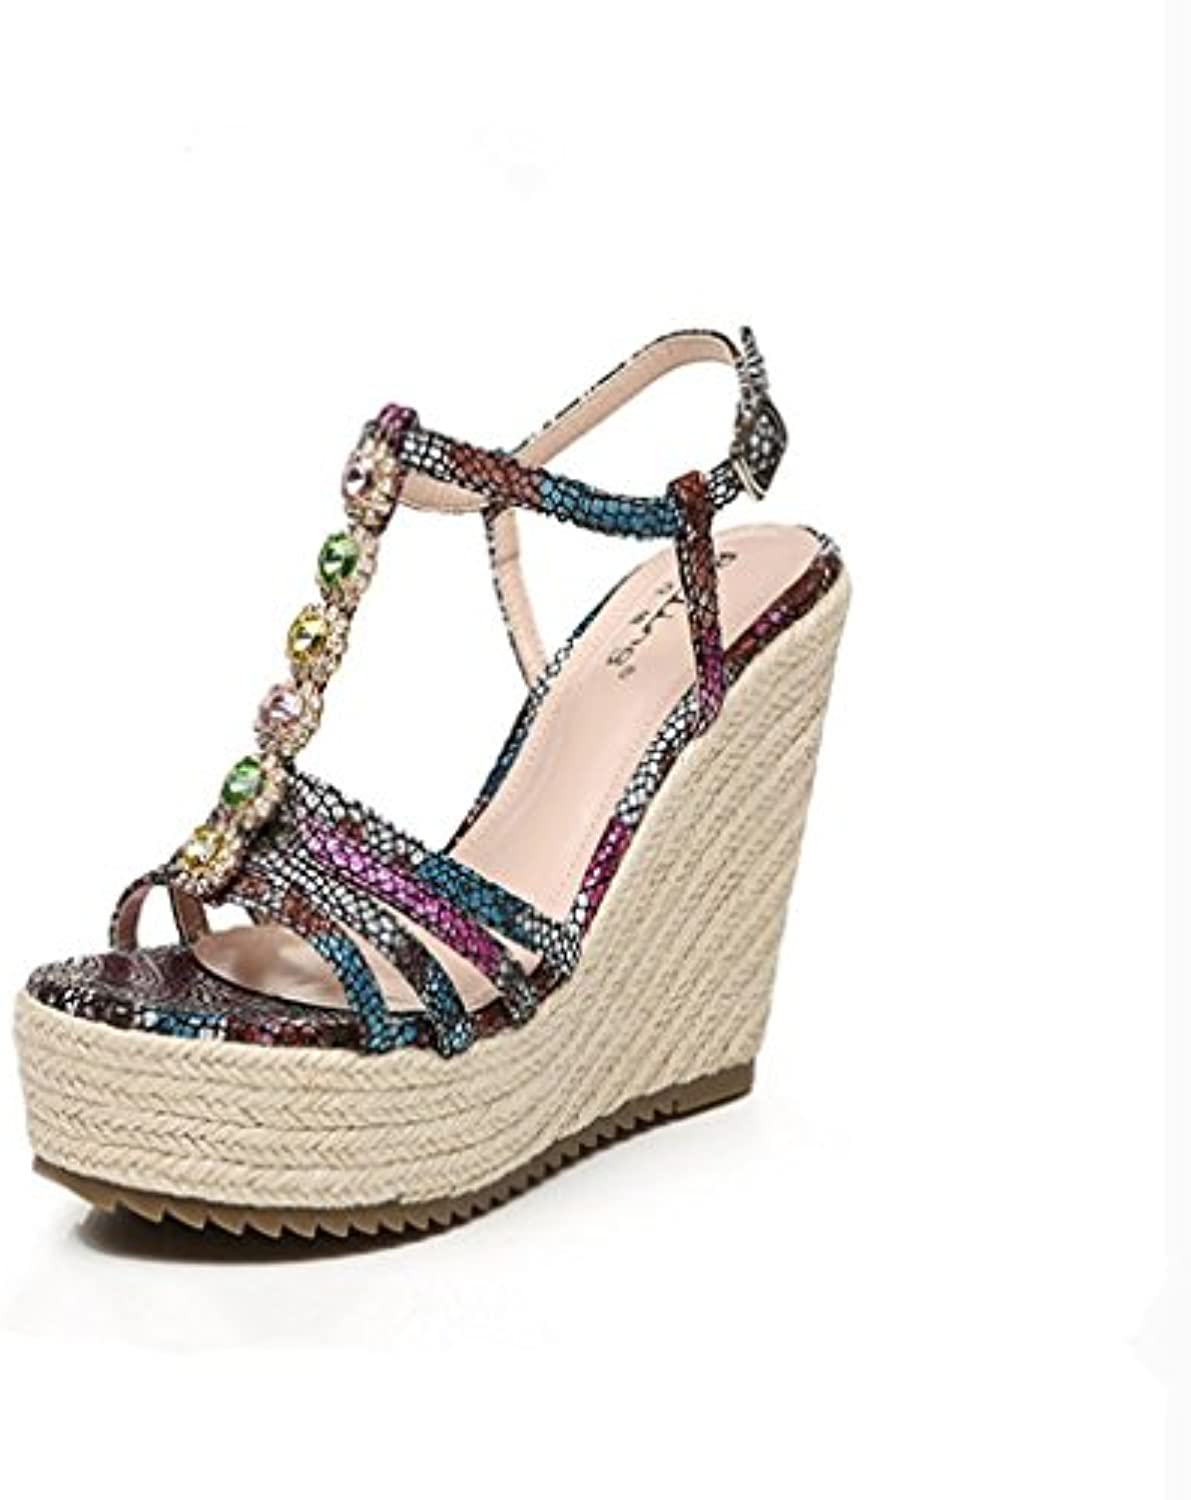 a9d5f4f63c04 BaiLing Women s Women s Women s summer sandals Wedge Heel handmade knitted  straw waterproof printing thick bottom small size shoes.